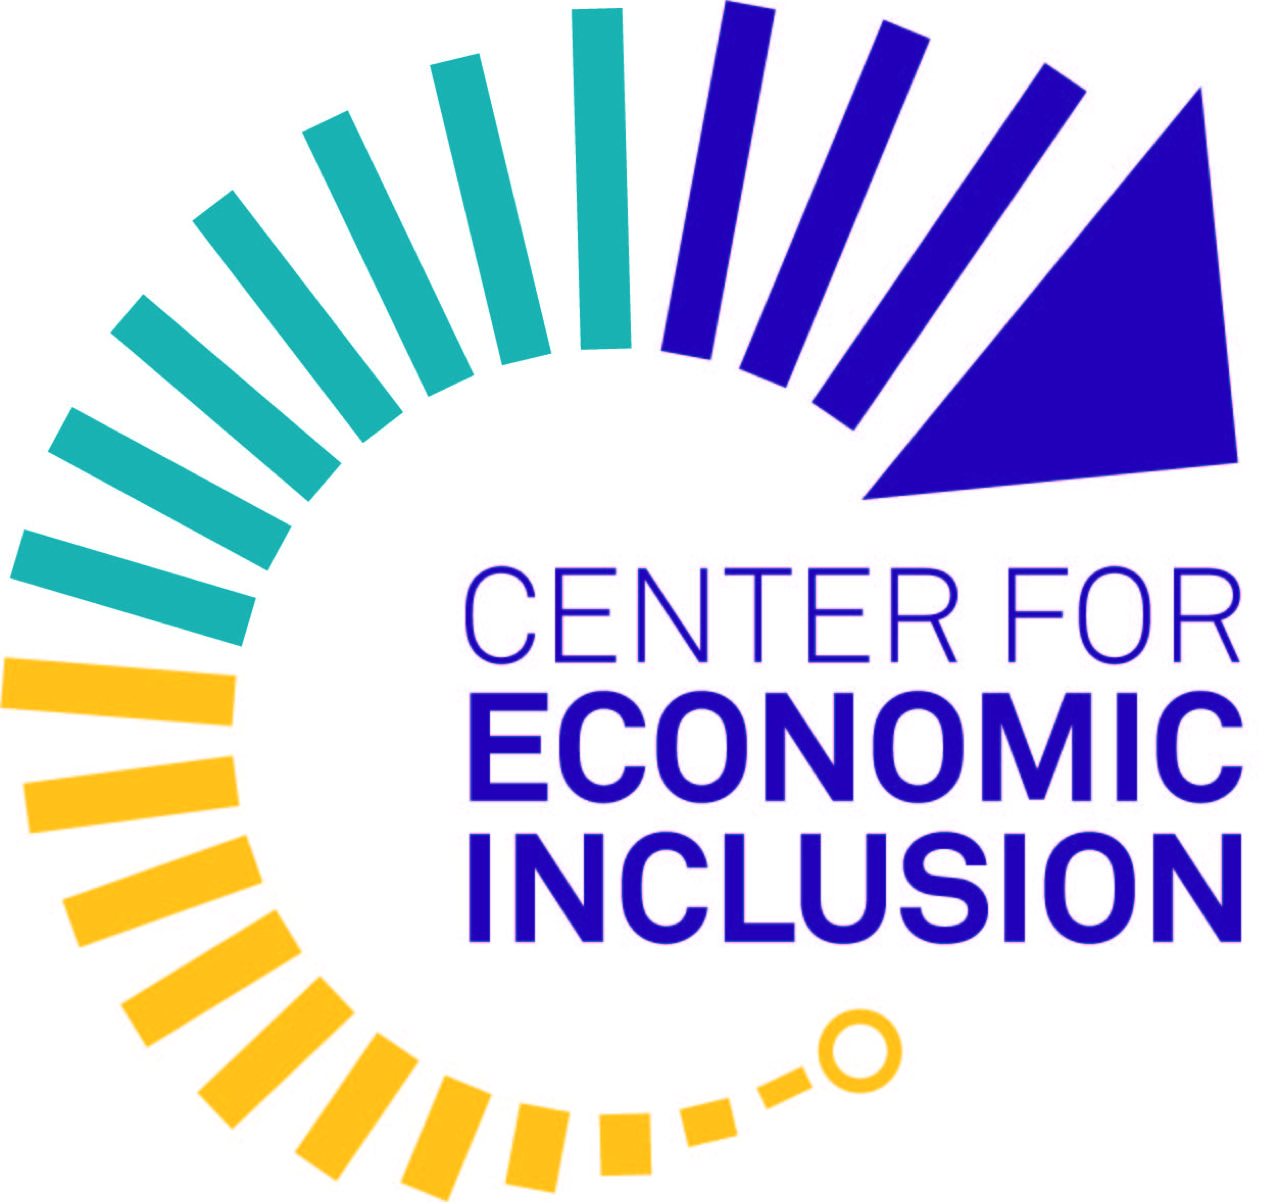 Center for Economic Inclusion Logo (1).jpg